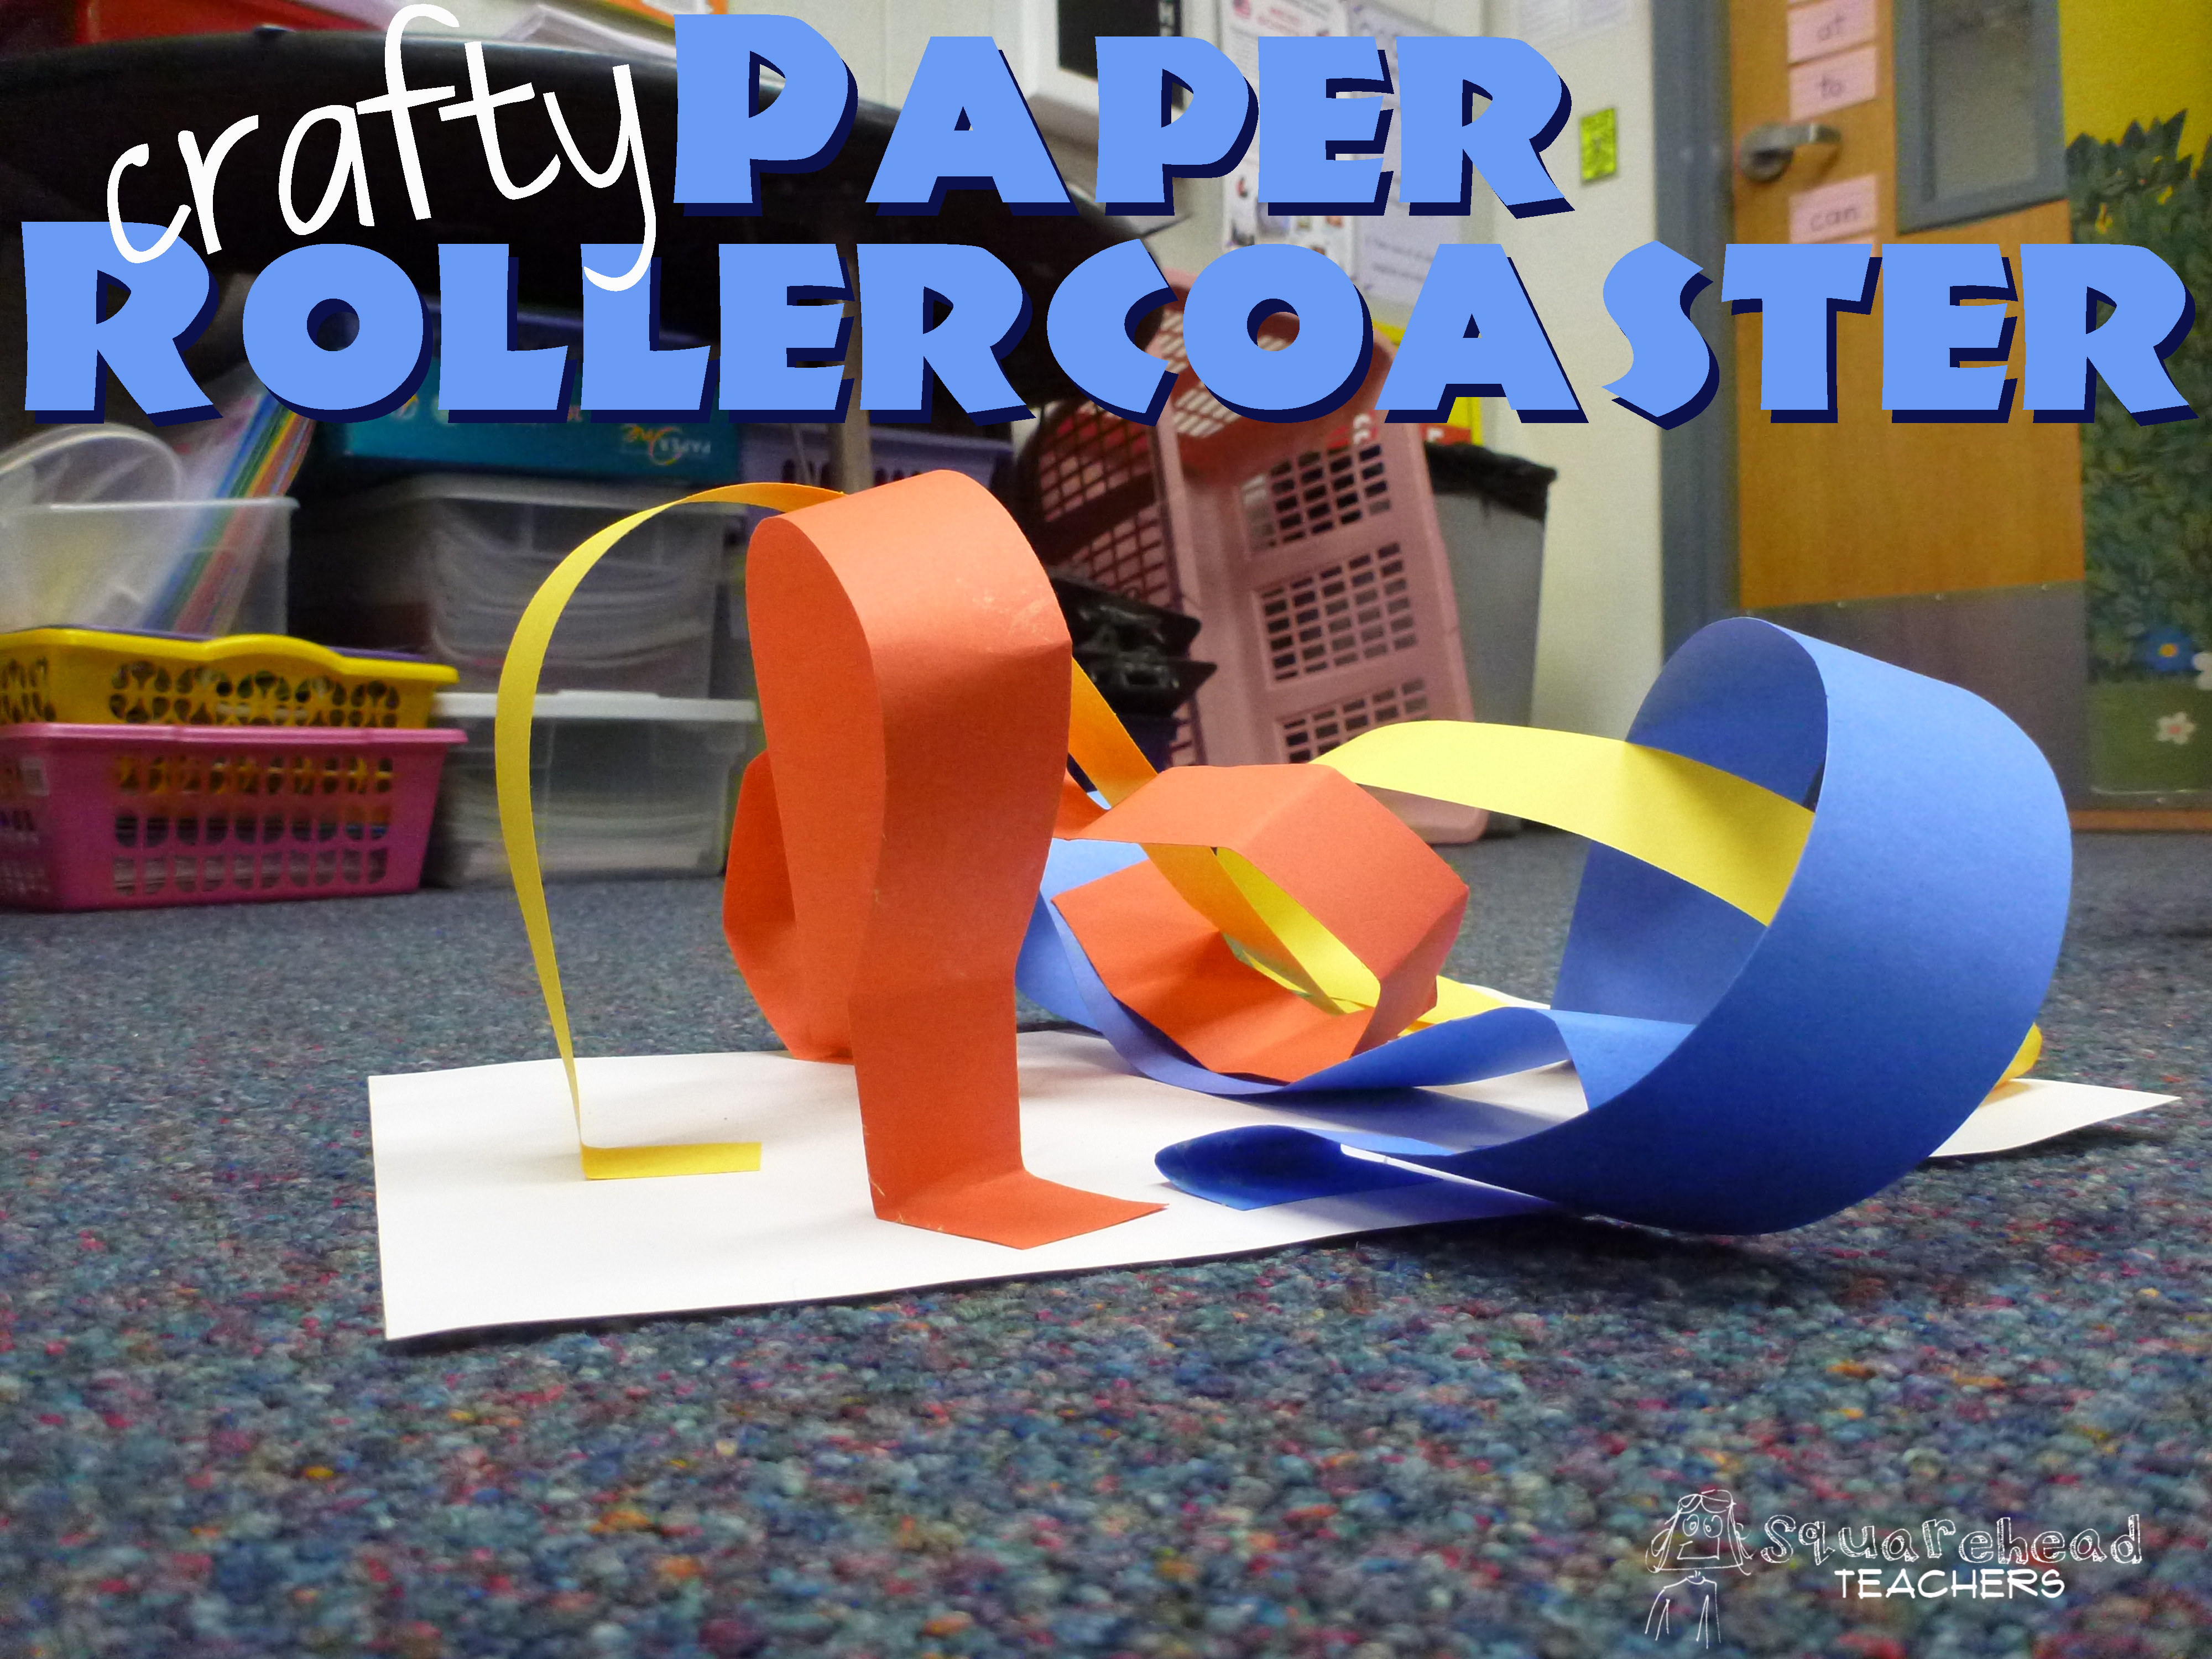 projects design unique coasters. rollercoaster Crafty Paper Roller Coaster  Squarehead Teachers